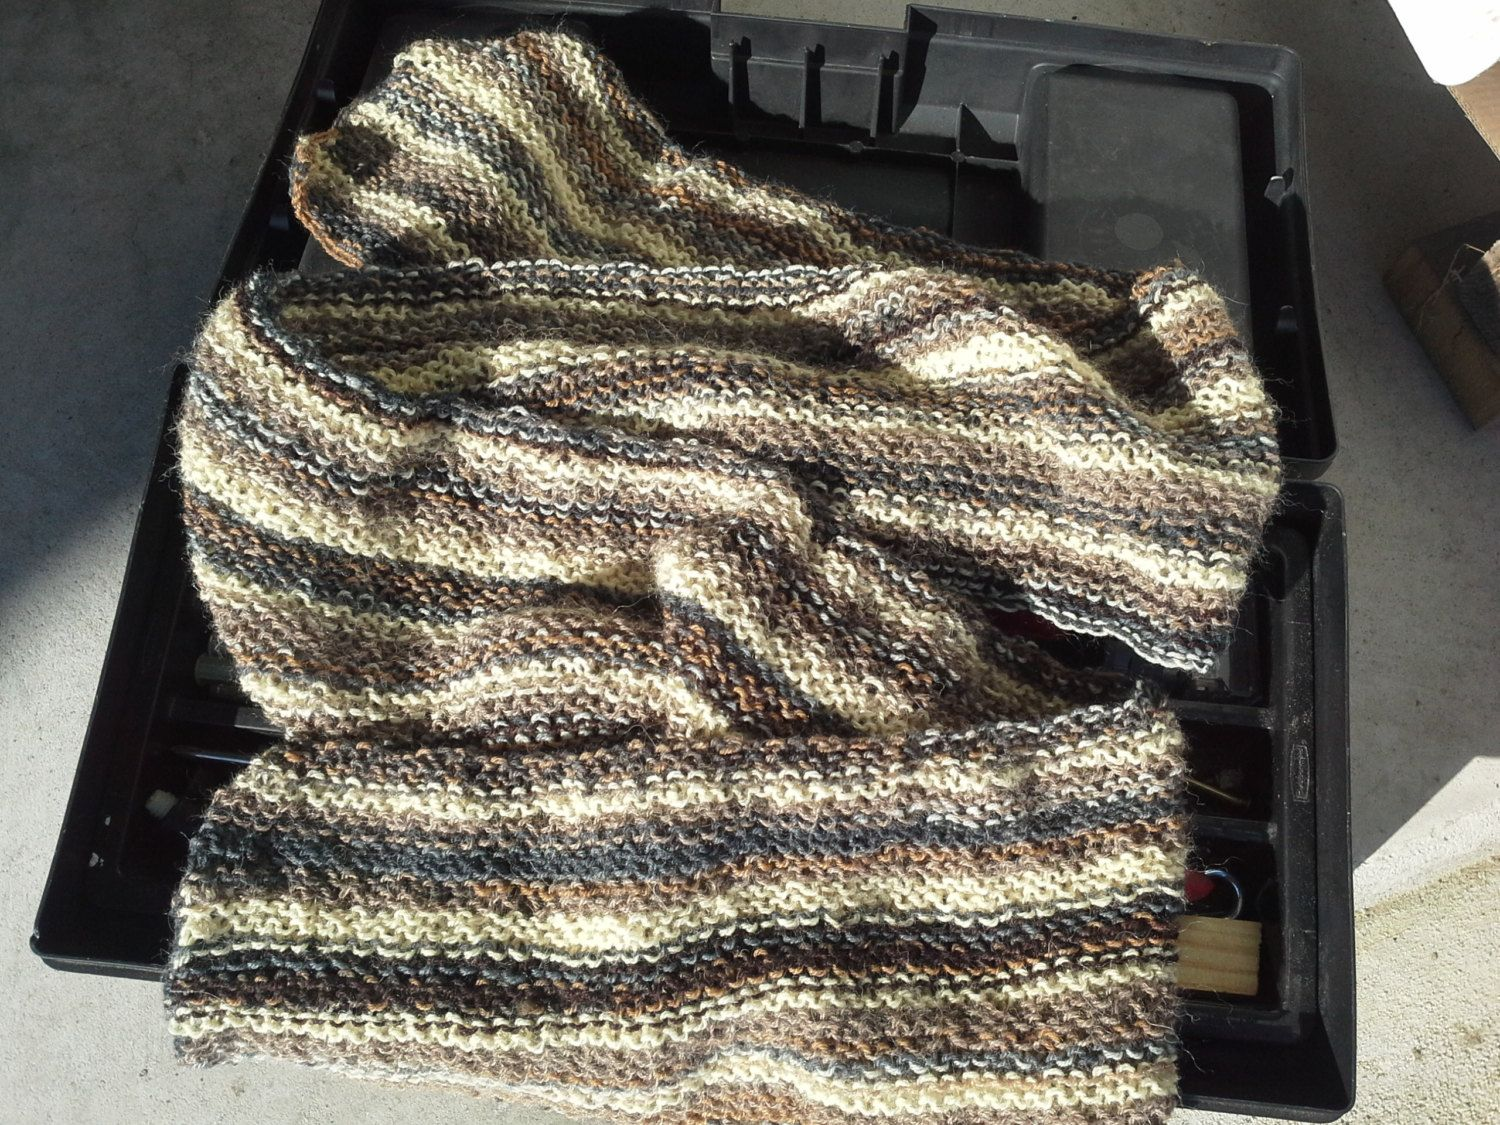 Brown Mens Alpaca Wool Scarf - Mens Striped College Scarf - Teens Handmade Knit  Winter Wrap Fashion Warm Brown Beige (Ready to Ship) by knitix on Etsy ... b6e2ca6a6827